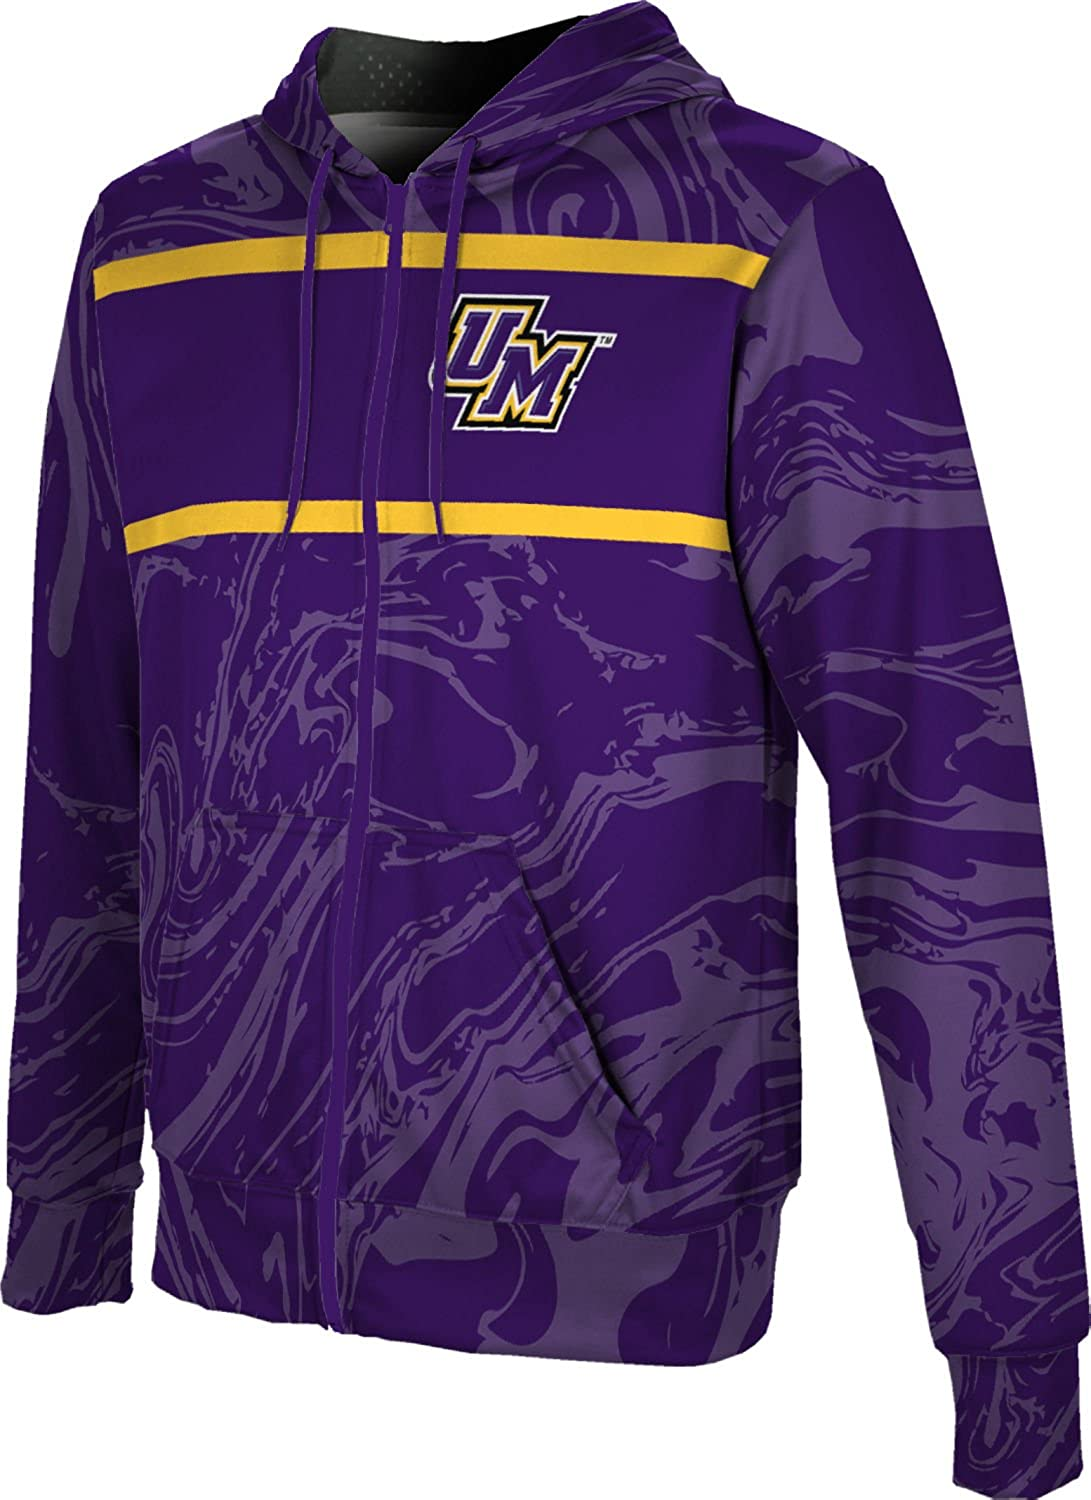 ProSphere University of Montevallo Boys Full Zip Hoodie Ripple